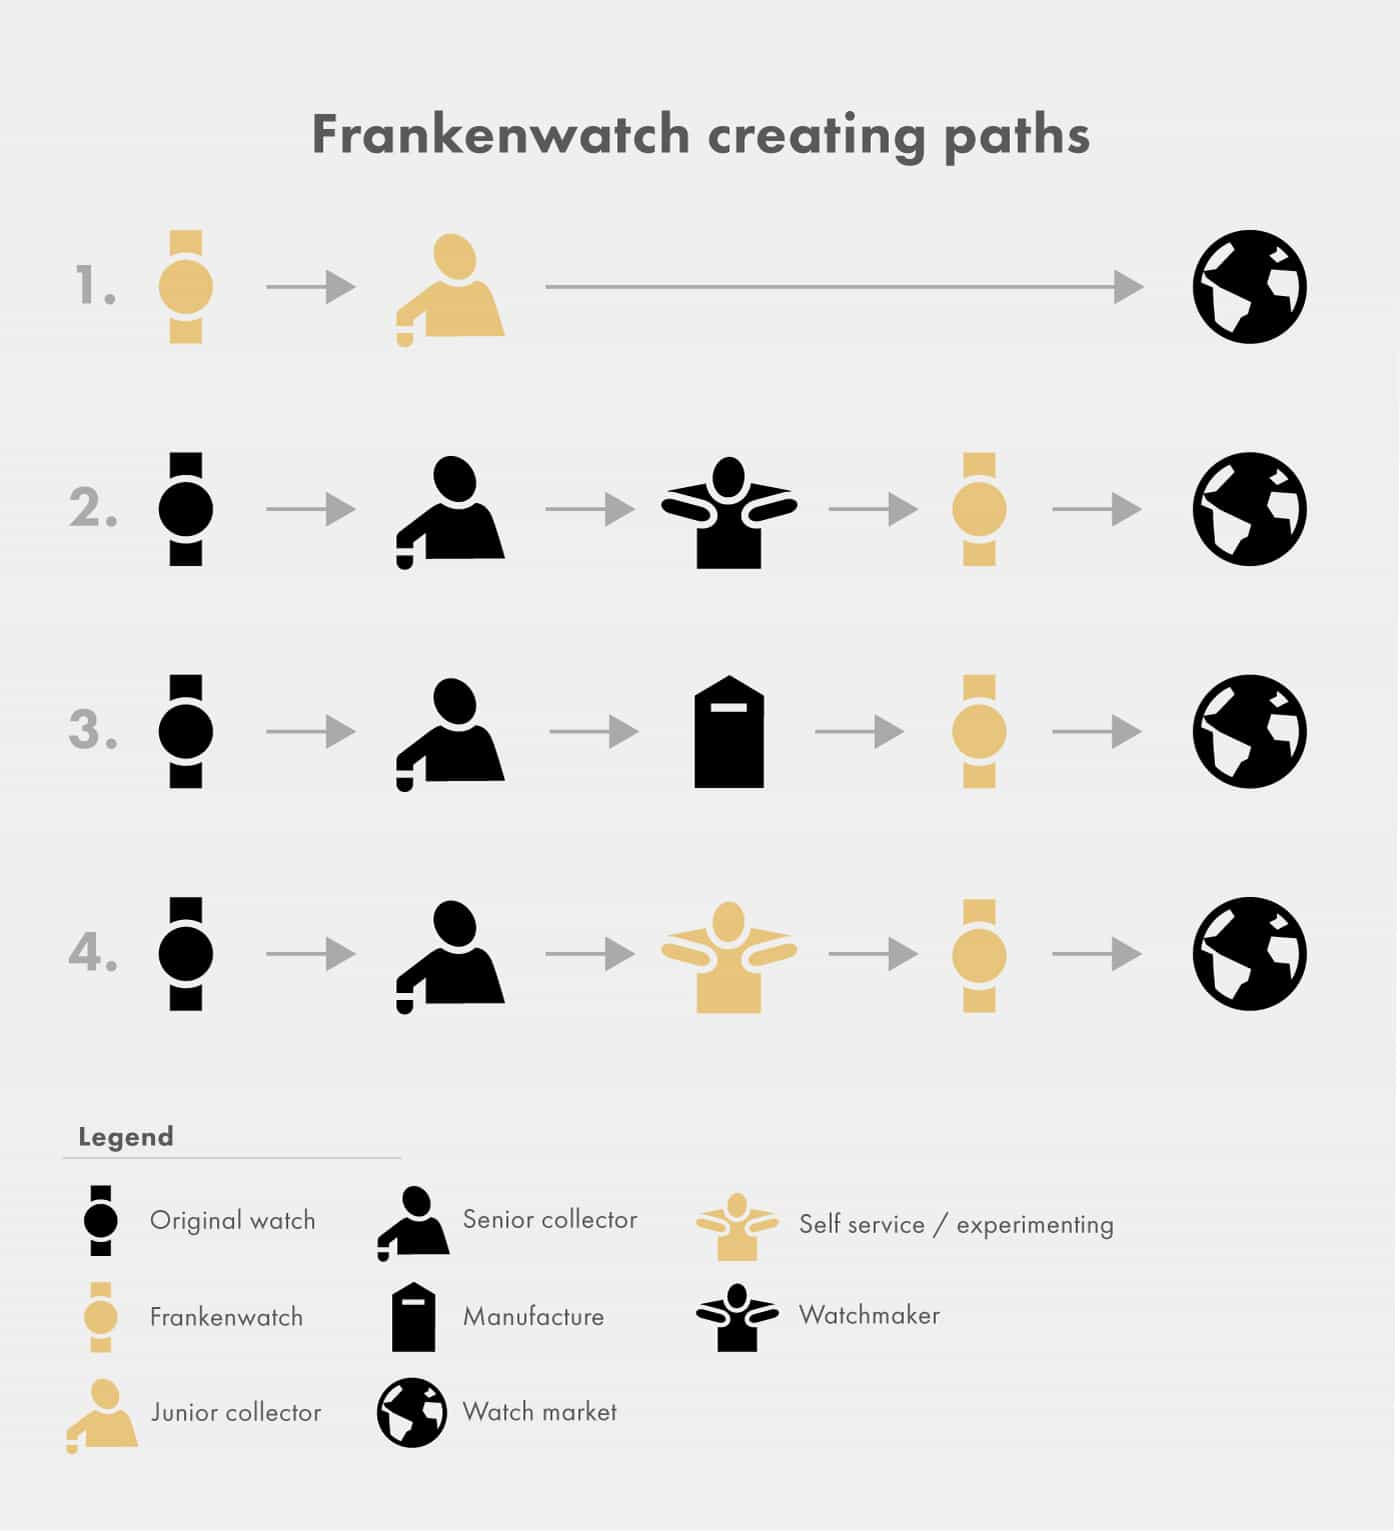 Frankenwatch creating paths